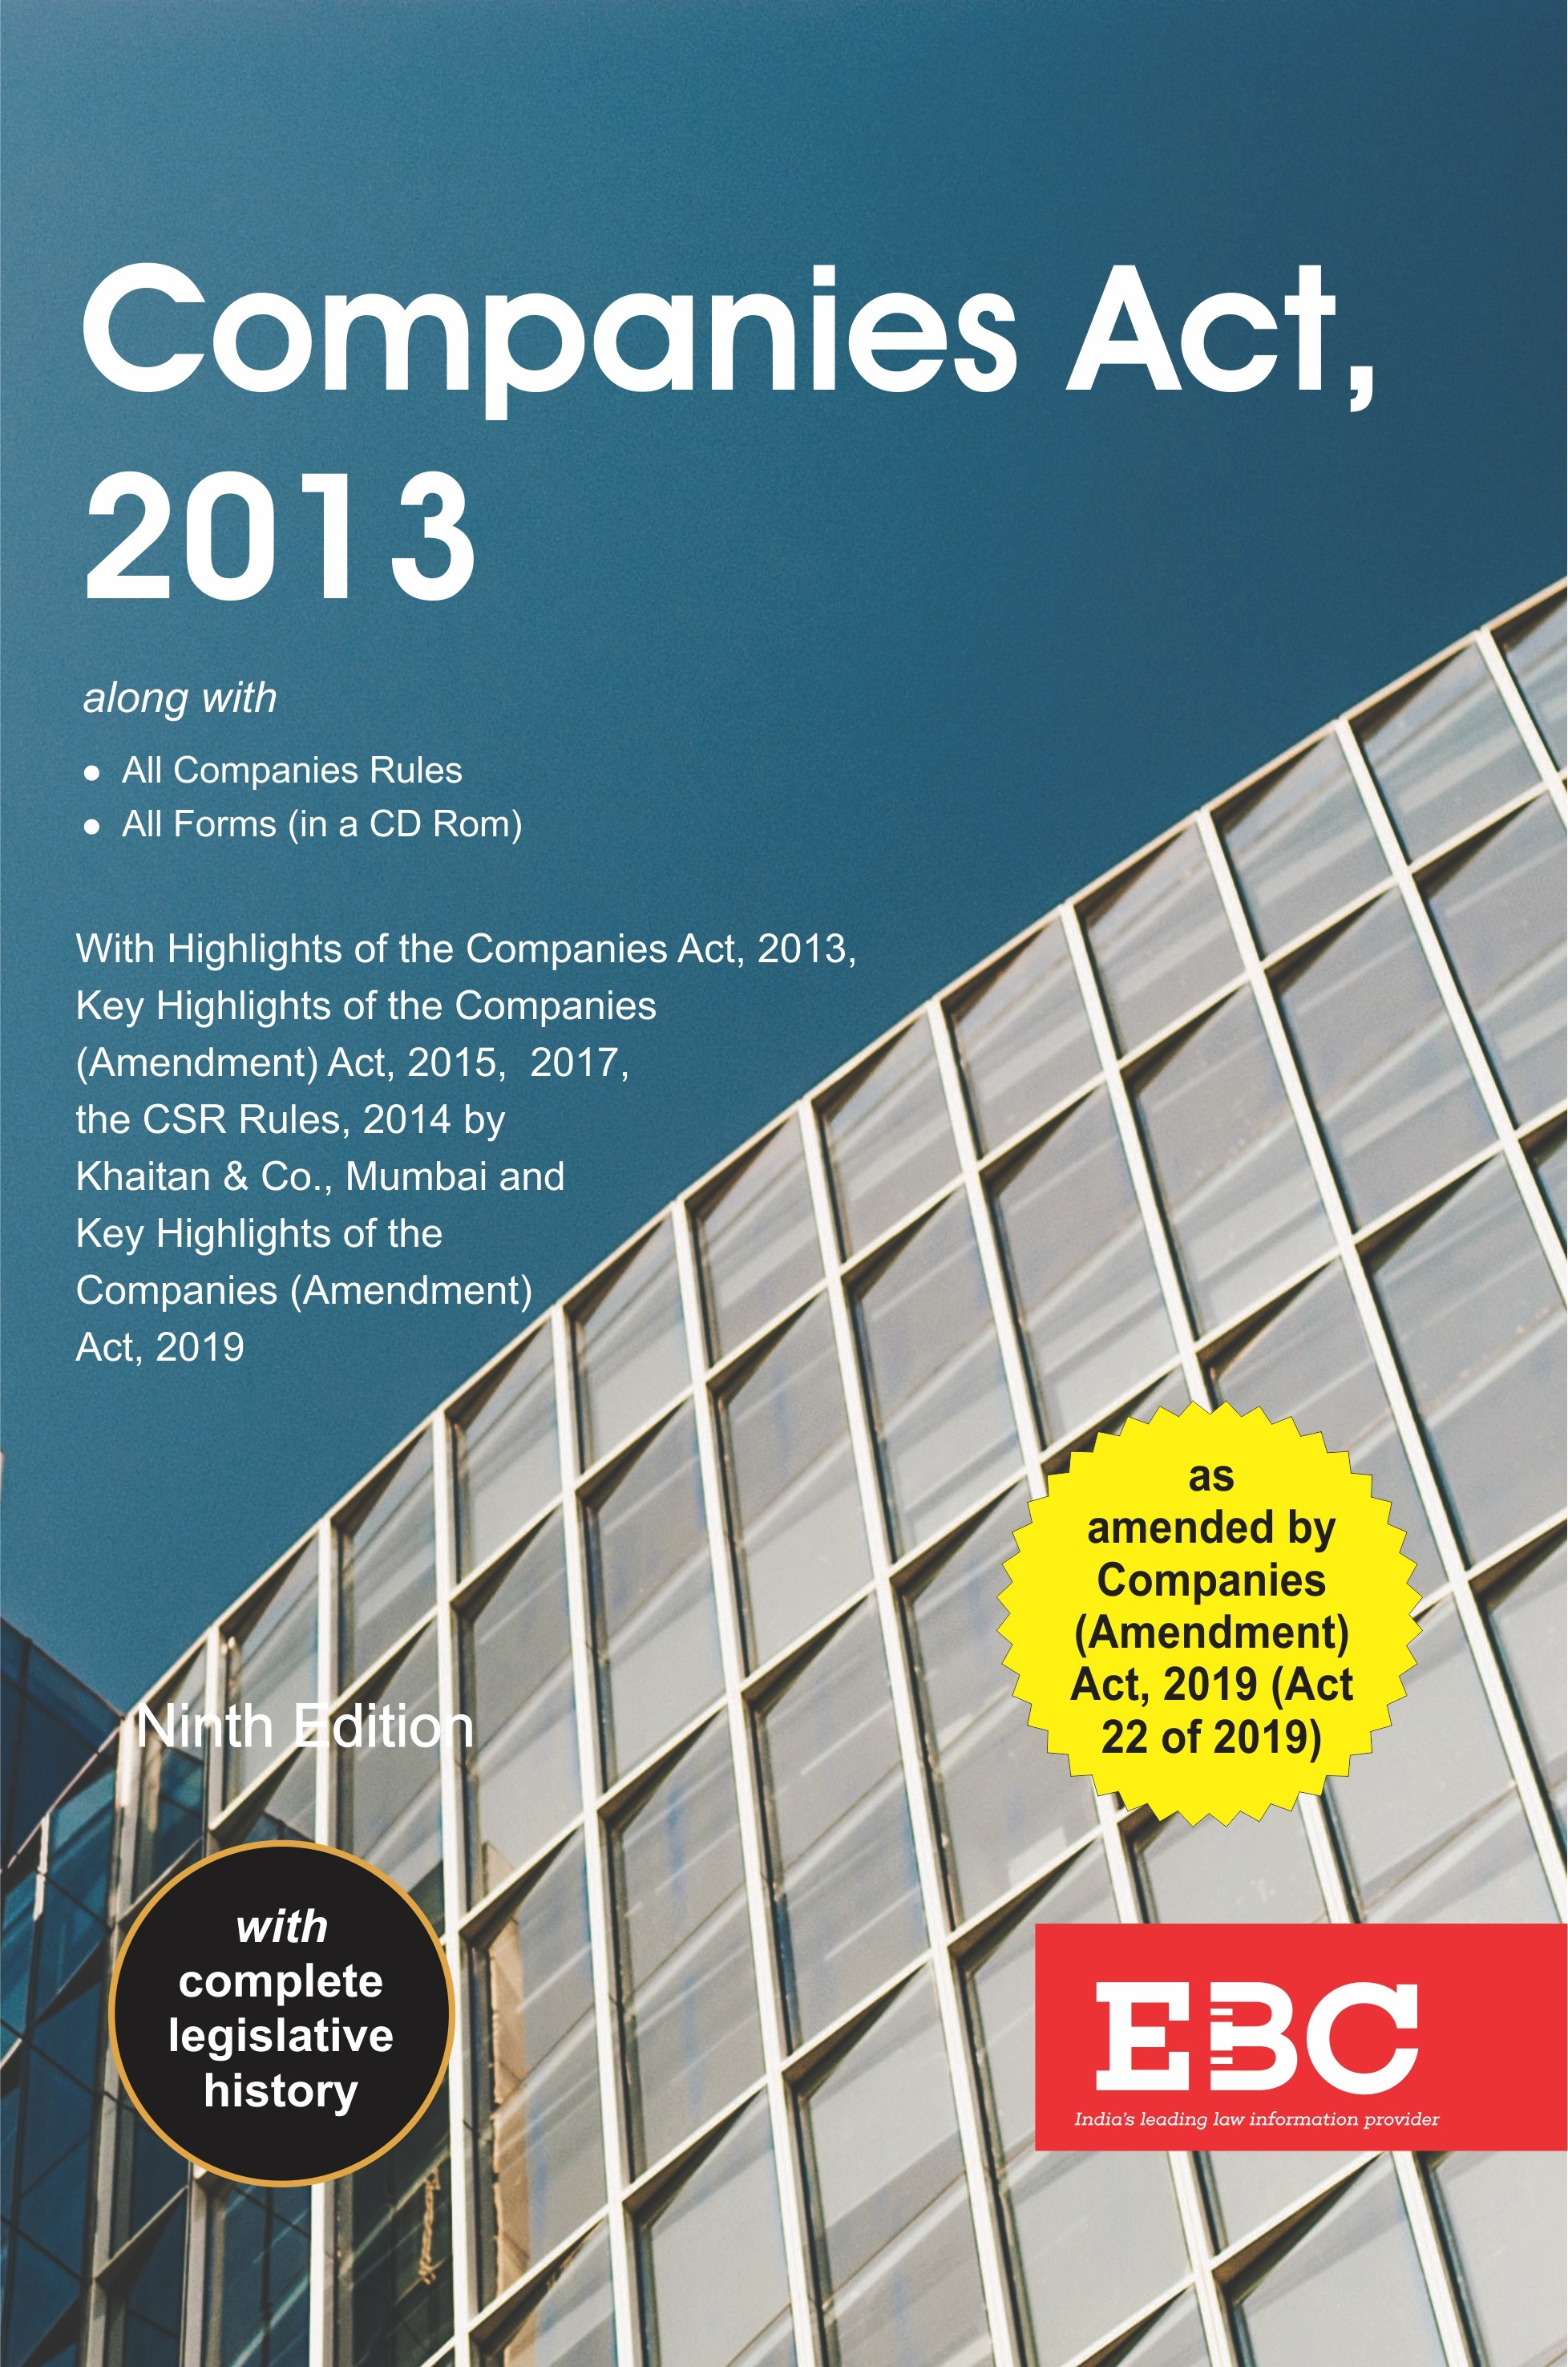 Companies Act, 2013 (Large)